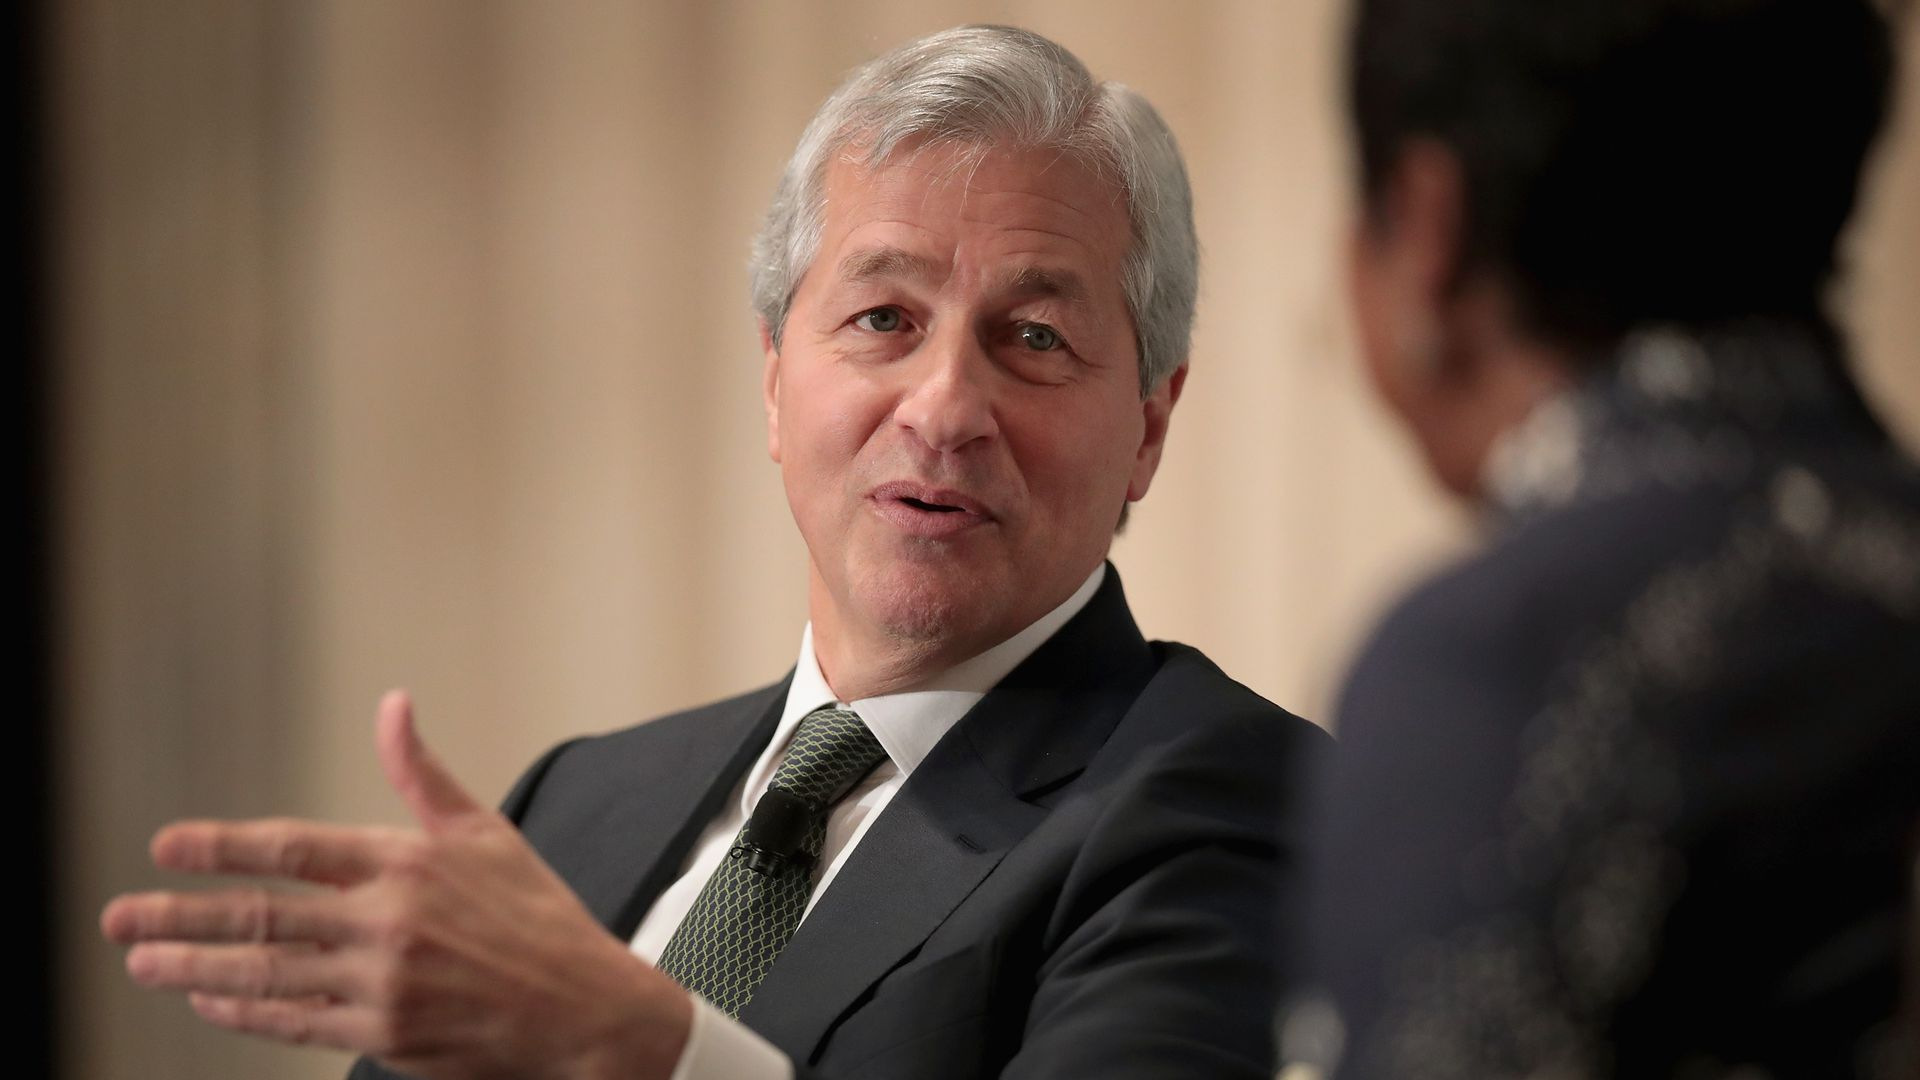 JPMorgan CEO Jamie Dimon speaks at a conference.